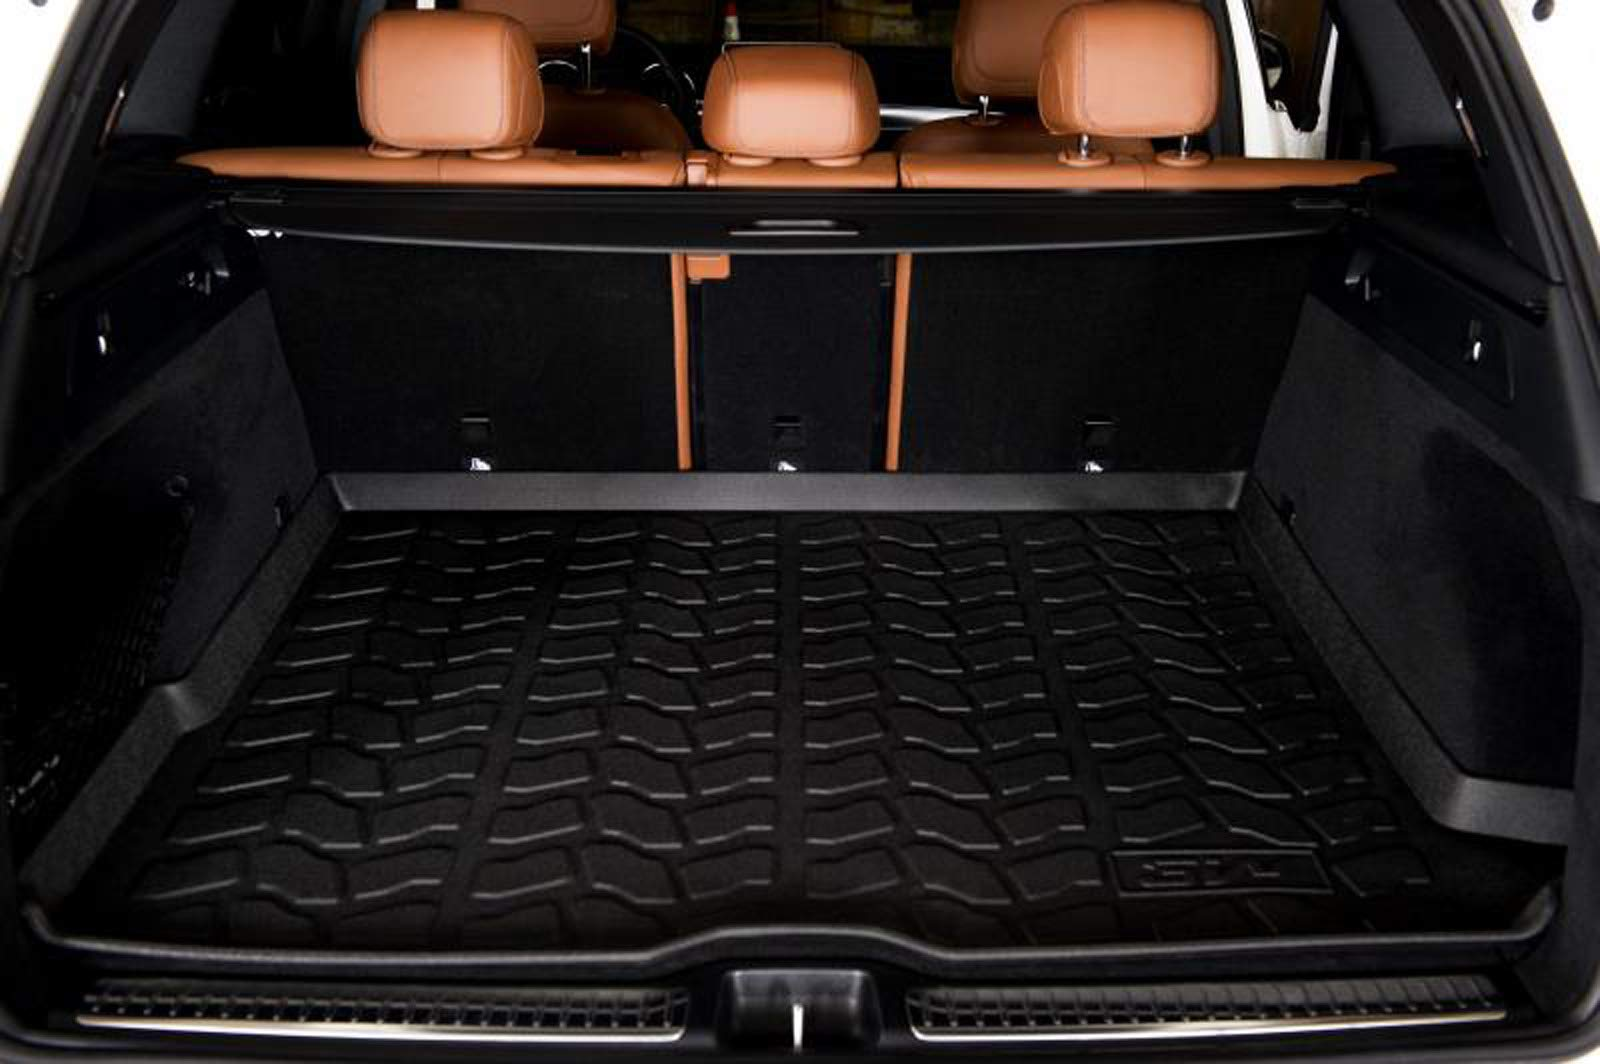 3W Floor Mats&Cargo Liner for Jeep Grand Cherokee (2016-2019) Full Set Heavy Duty Protection Custom Fit Floor Carpet&Trunk Mat All Weather Odorless TPE, Black by 3W (Image #3)